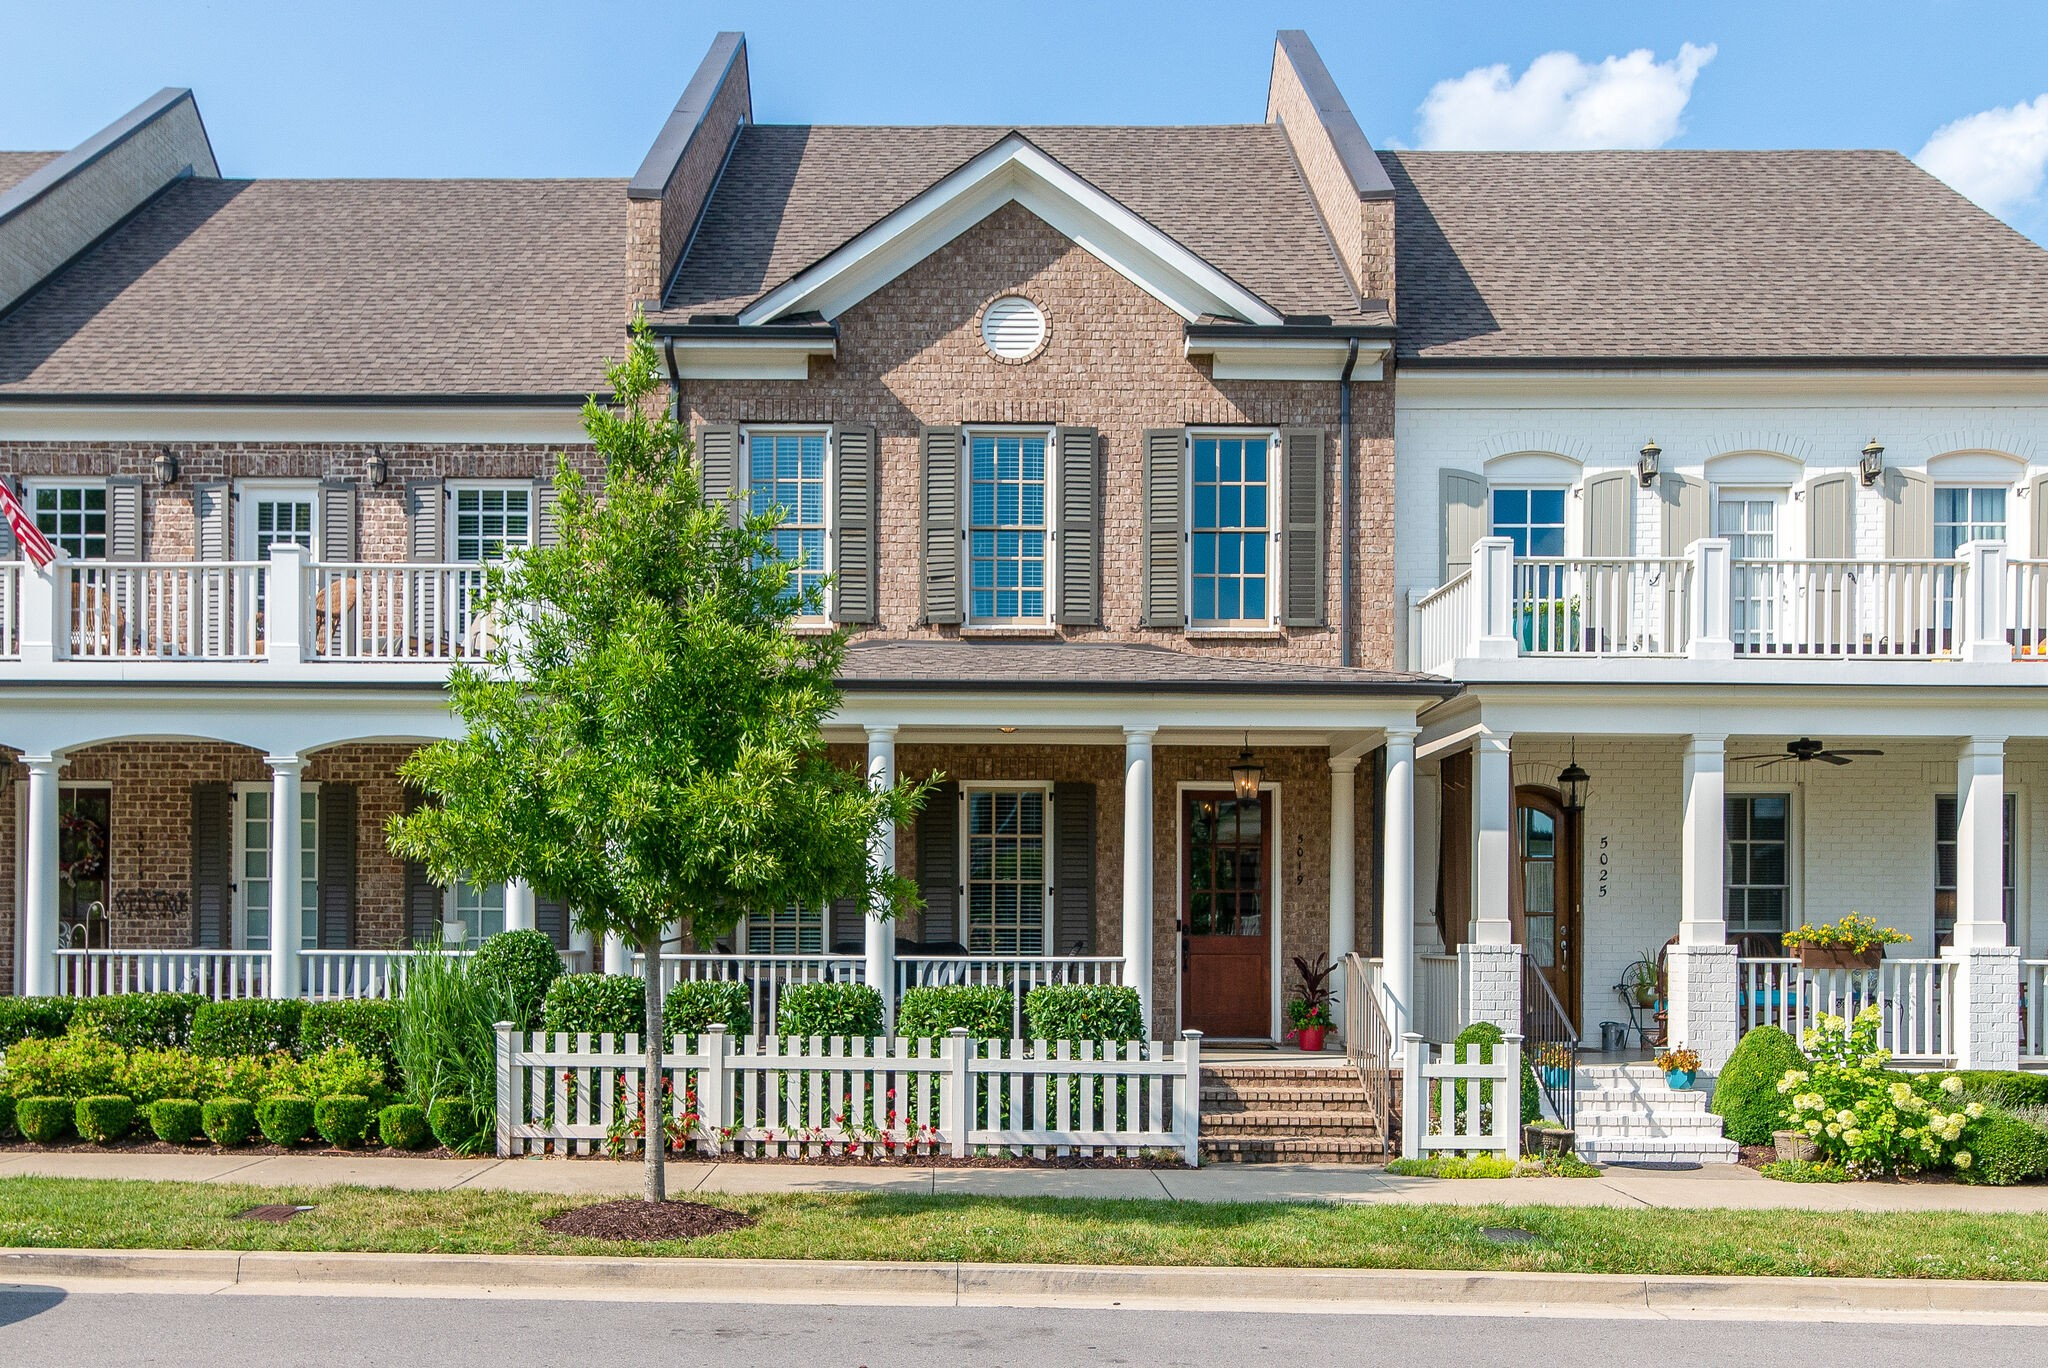 Beautiful Brownstone in Westhaven that provides luxury low maintenance living! The Violet floorplan features 4 bedrooms, 3.5 bathrooms, bonus room, & sitting room. Primary bedroom on the main floor filled with natural light. Primary bathroom with double vanities & large walk-in closet. Great open concept floorplan with large windows. Back fenced area with stone patio. Extra storage space built in attic. This home is across from Giving Tree Park with a nice view from the covered porch!